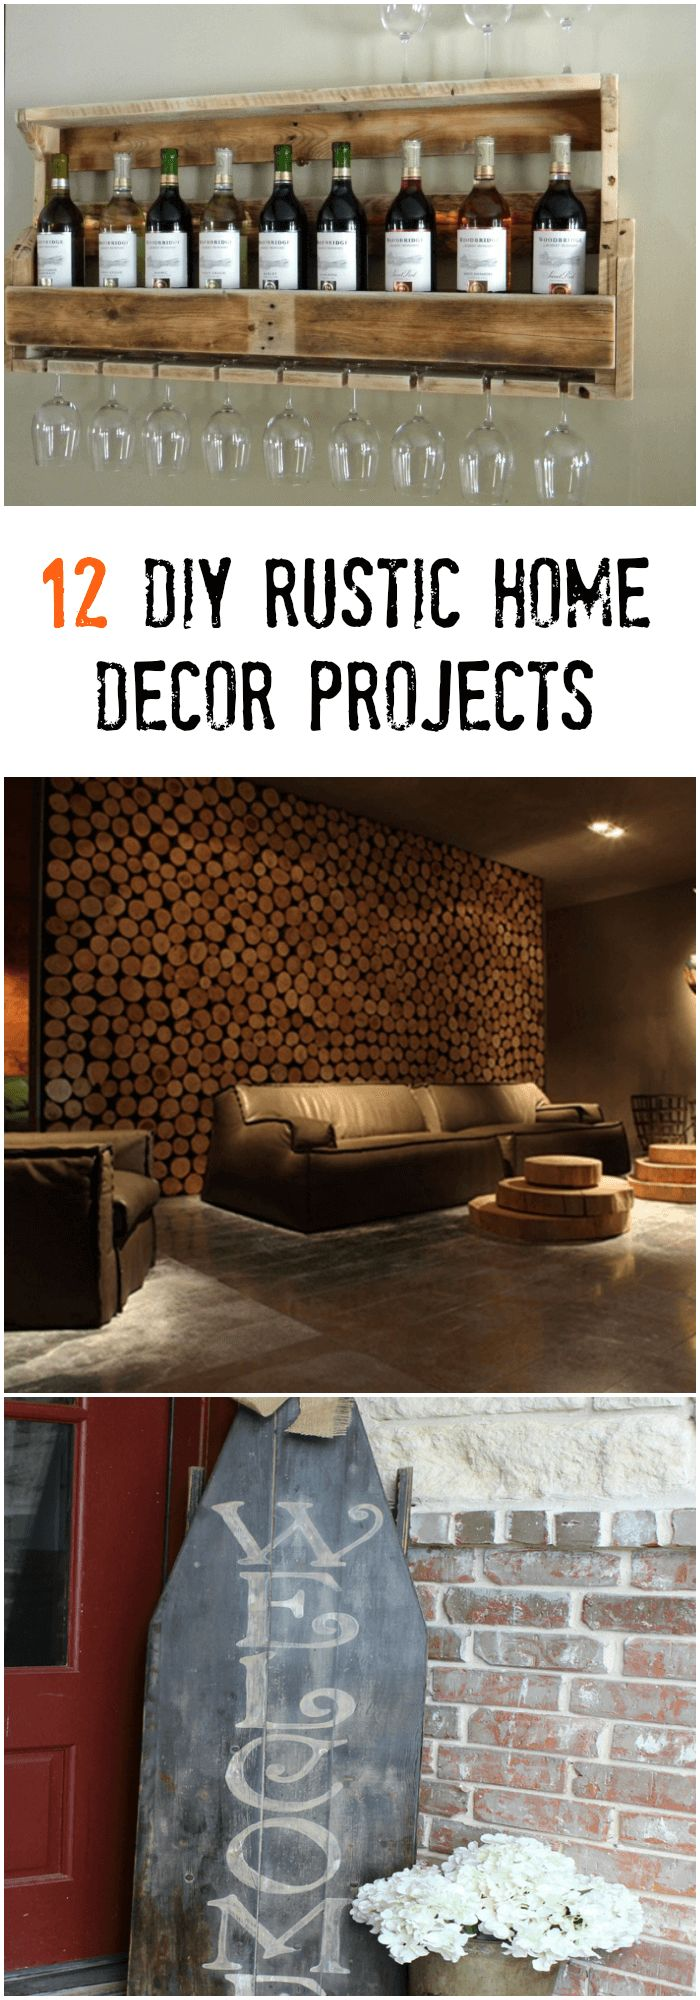 12 DIY Rustic Home Decor Projects For All Rustic Design Lovers #diy #projects #home #decor #rustic #design